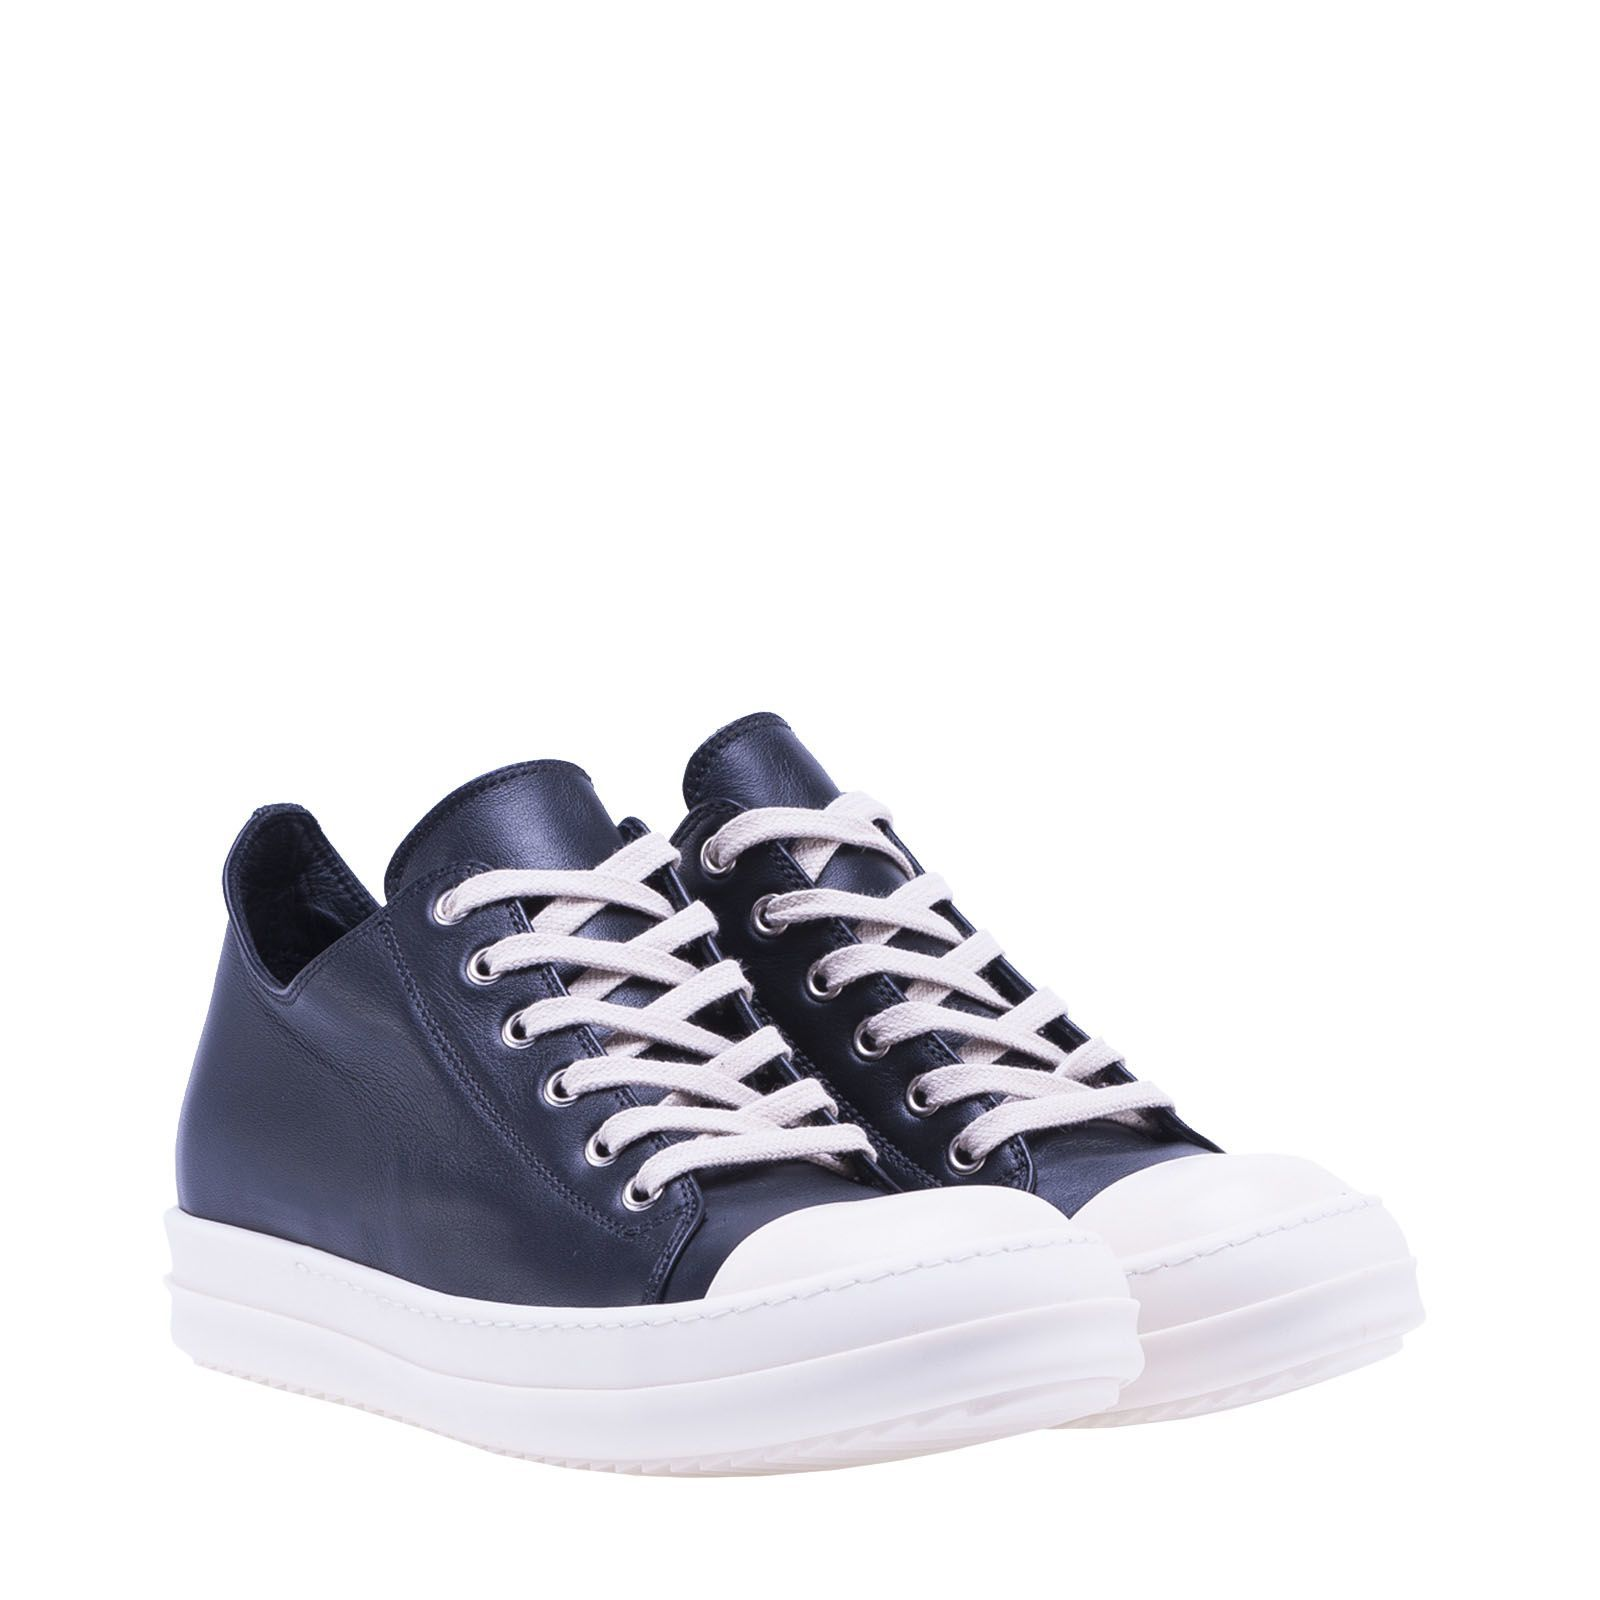 exclusieve Rick Owens Rick Owens Lace-up Sneakers (zwart/wit)